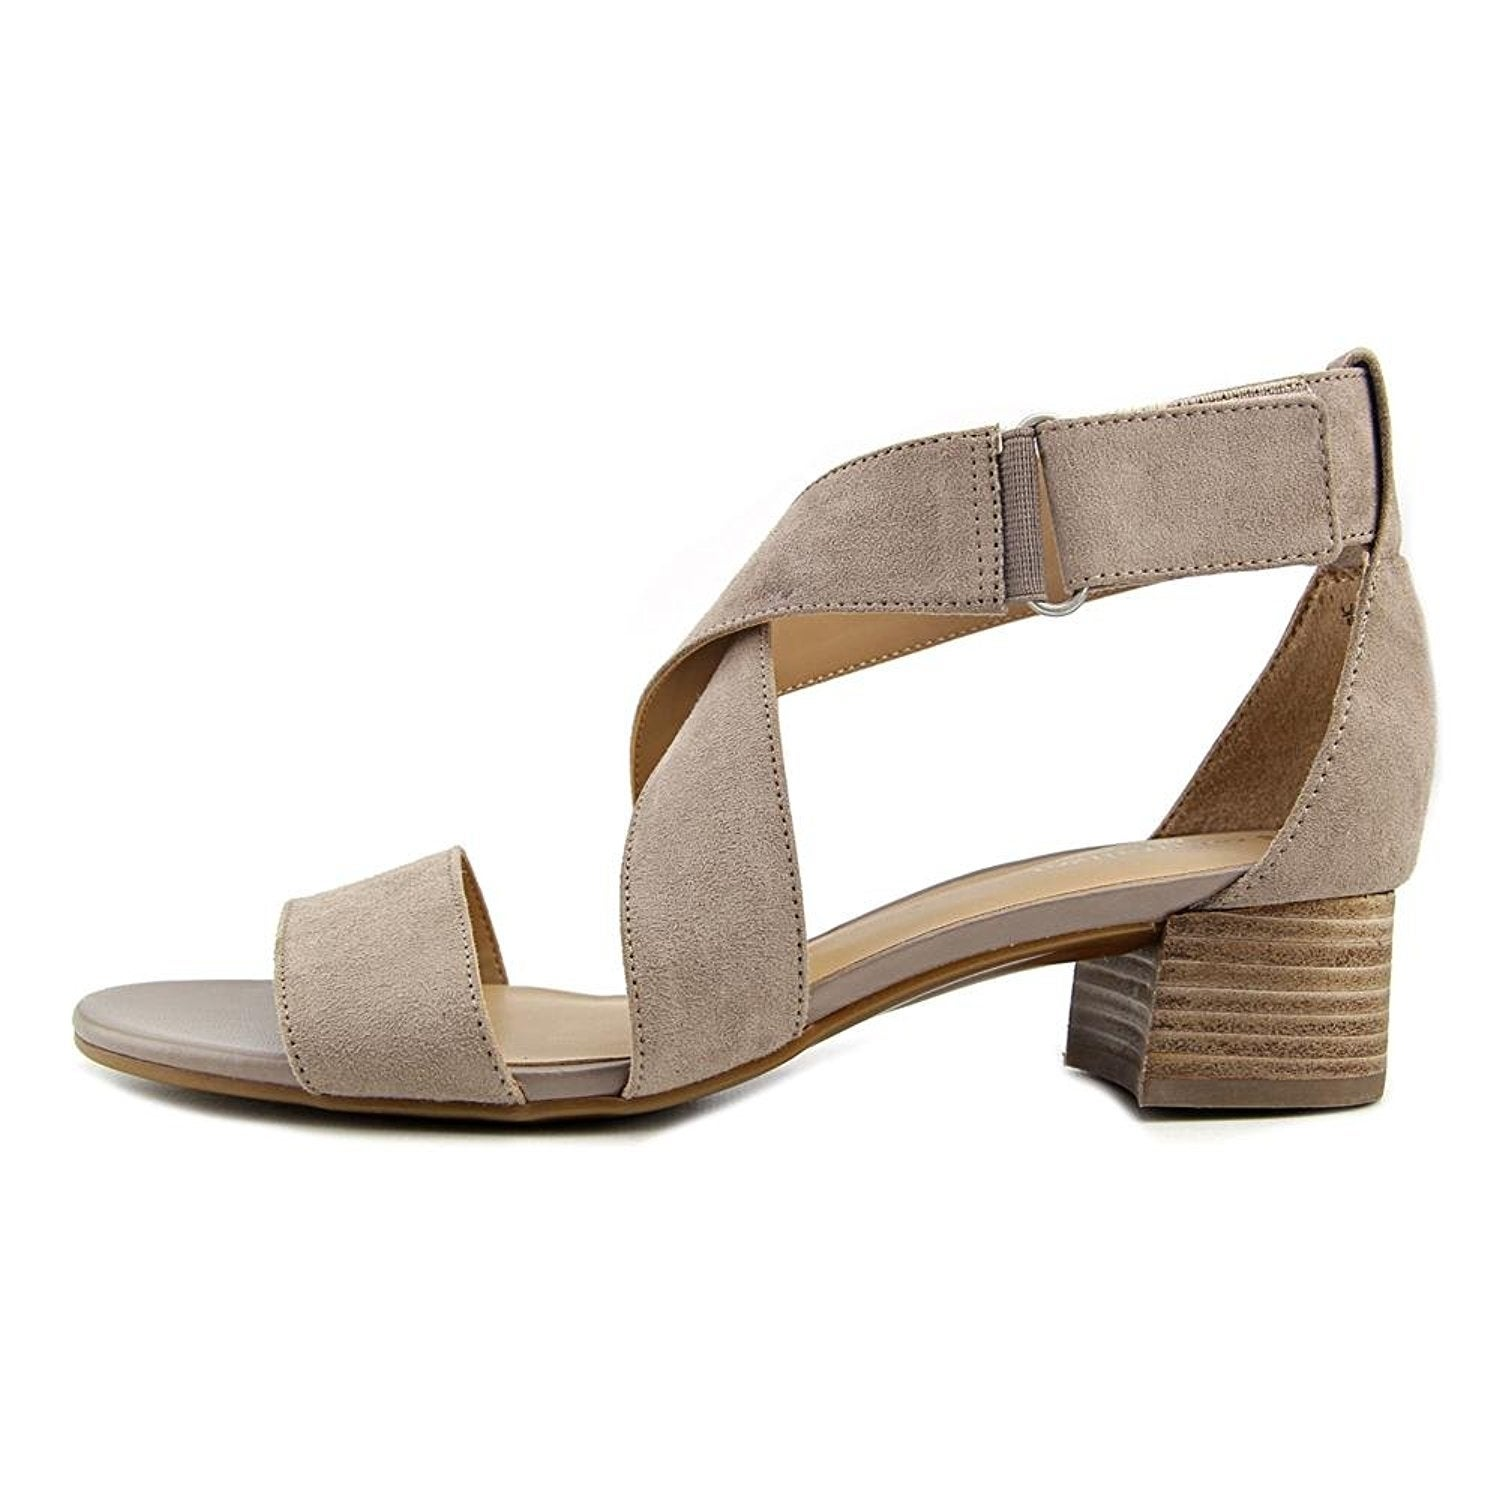 cc613d0c627 Shop Naturalizer Womens Adele Fabric Open Toe Casual Strappy Sandals - Free  Shipping Today - Overstock - 21154205